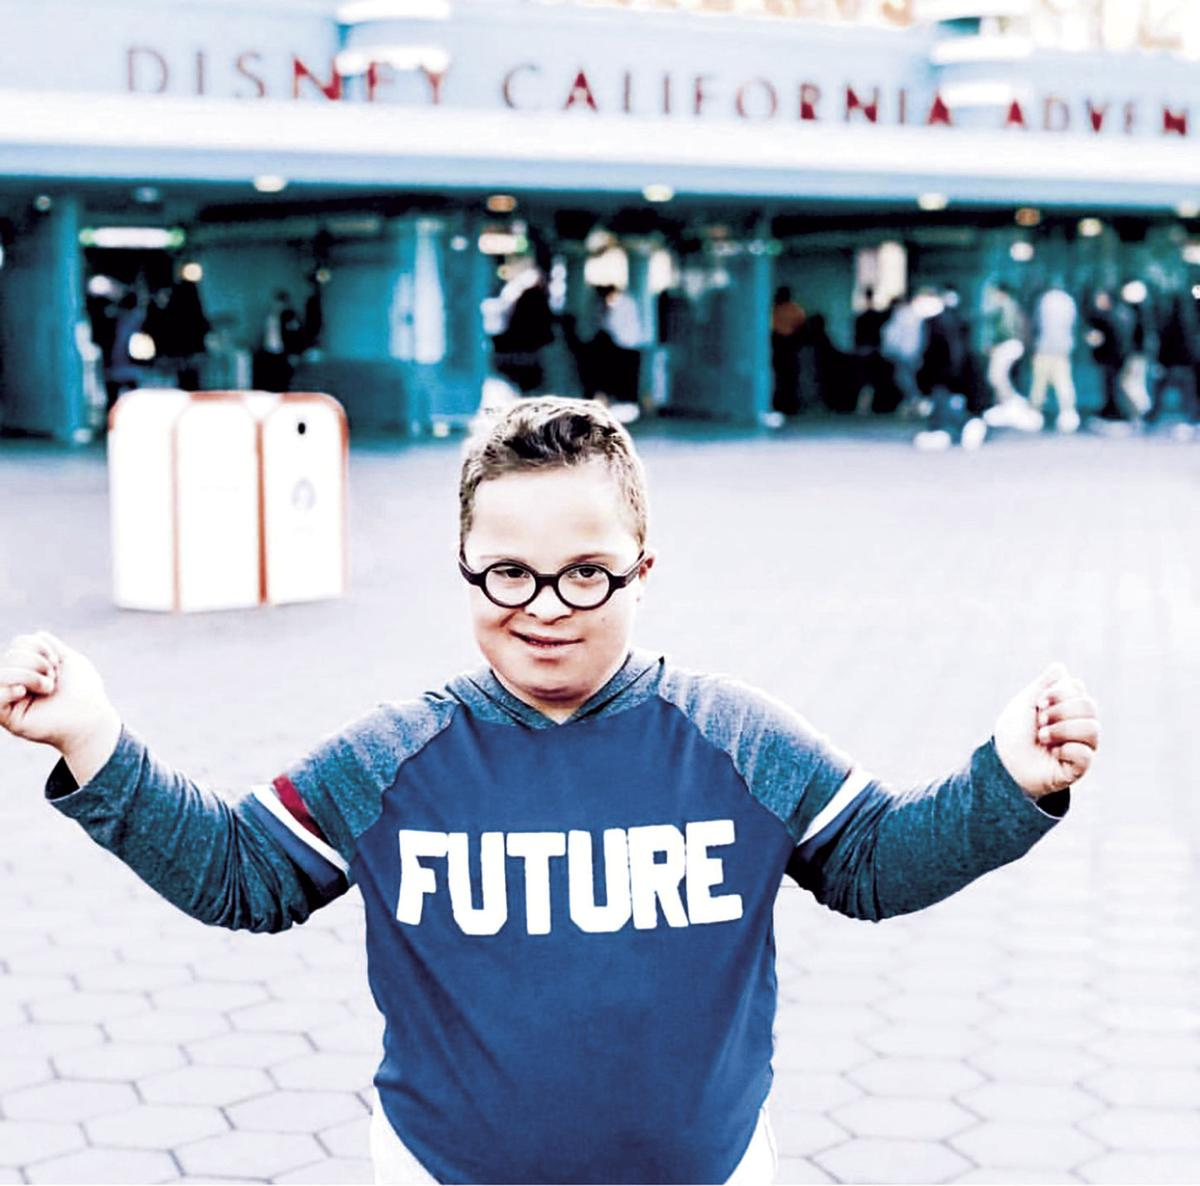 Lodi boy's photo to be on Times Square billboard